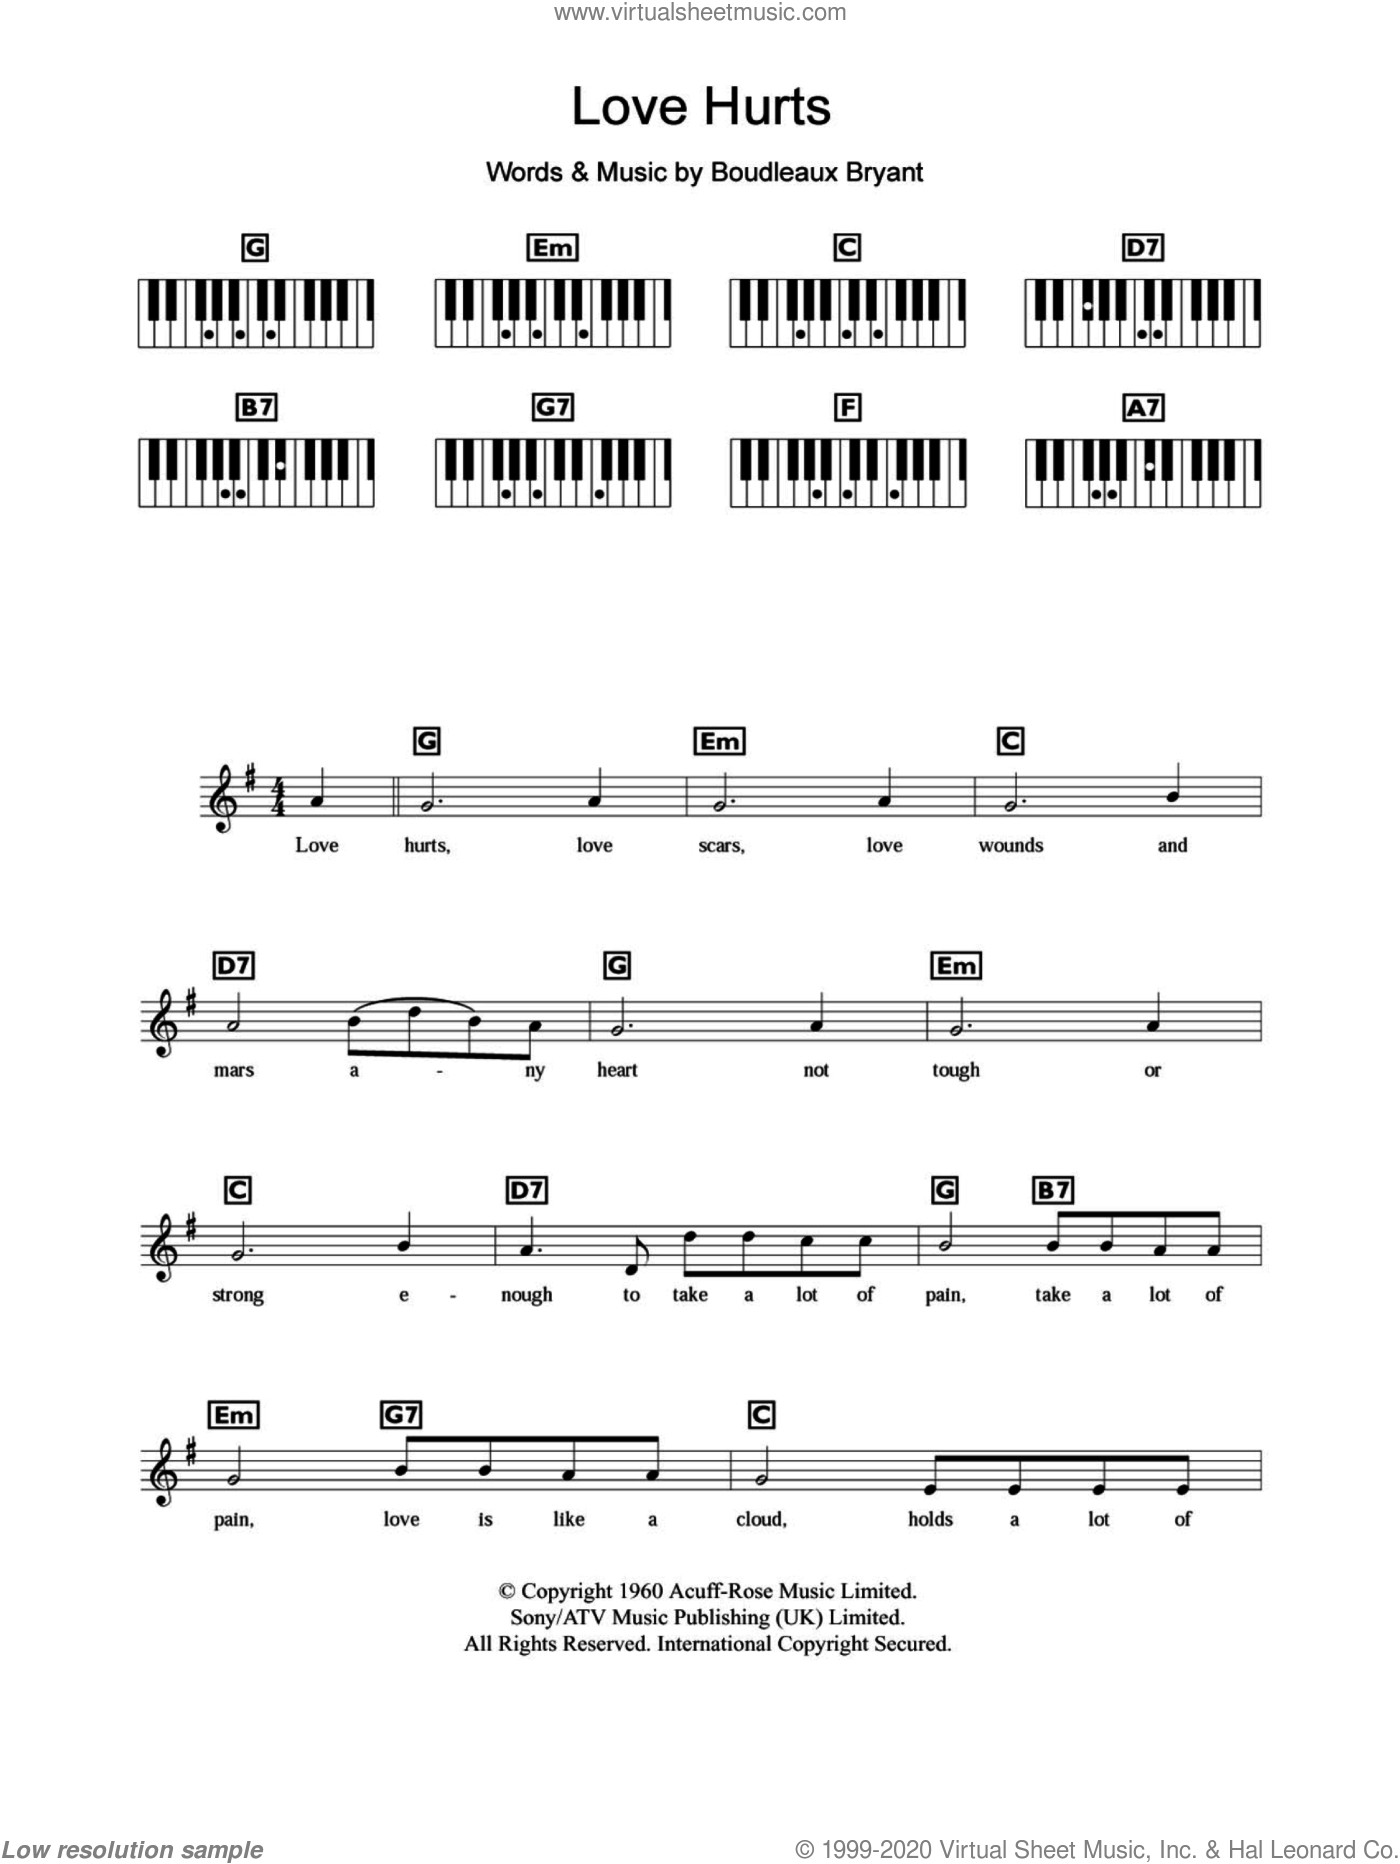 Love Hurts sheet music for piano solo (chords, lyrics, melody) by Boudleaux Bryant